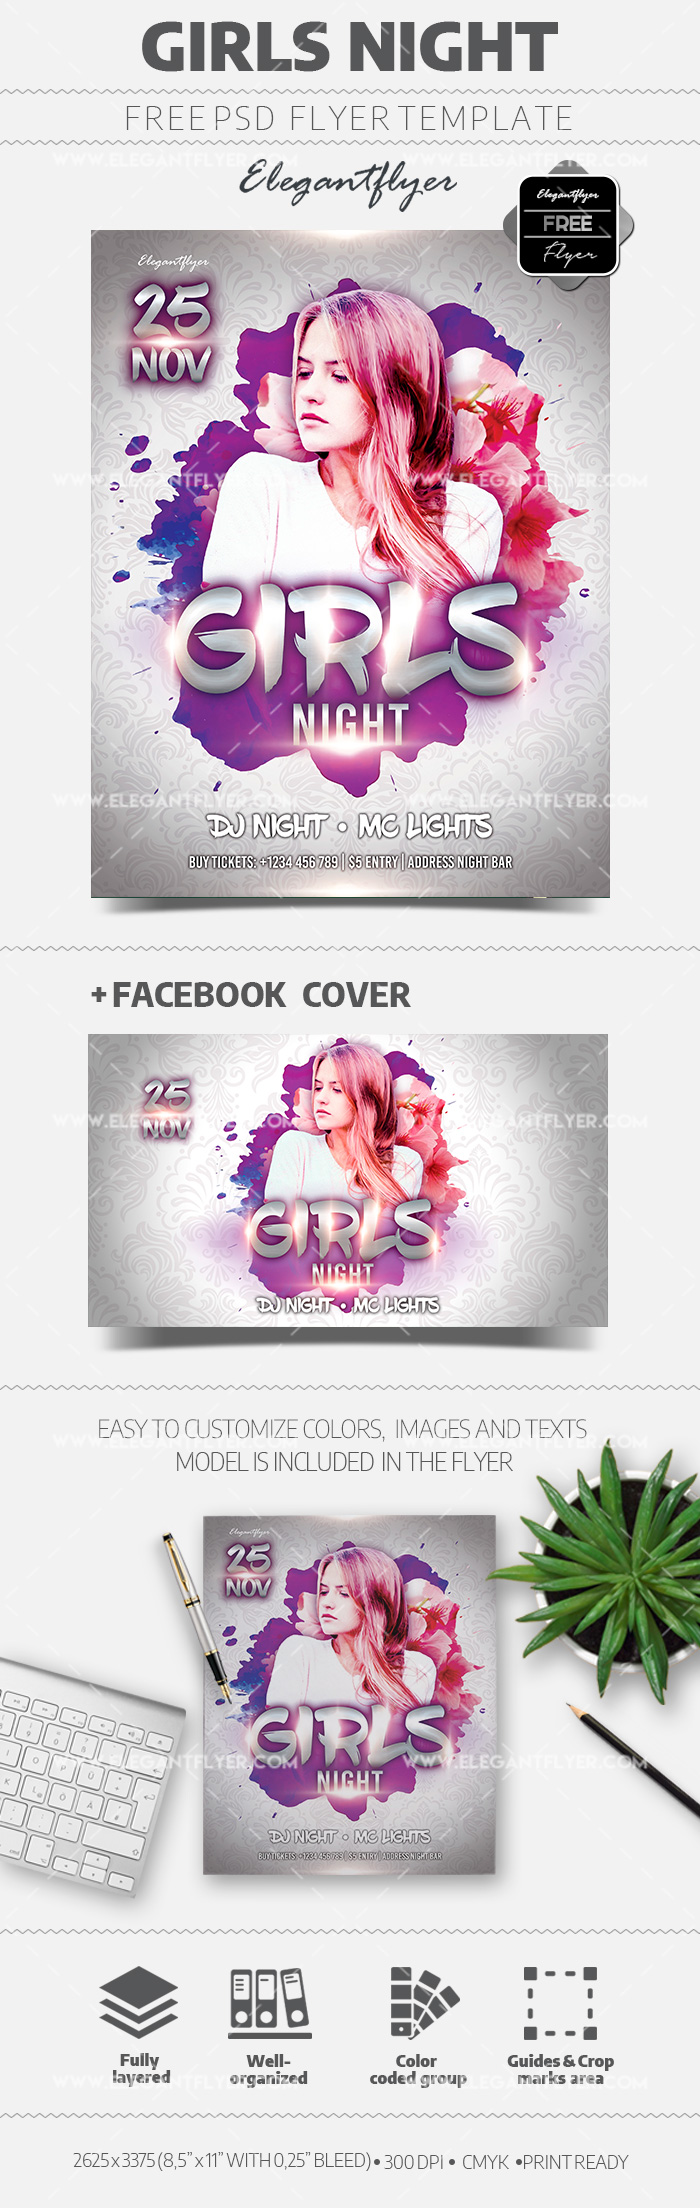 Girls Night – Free Flyer Template in PSD